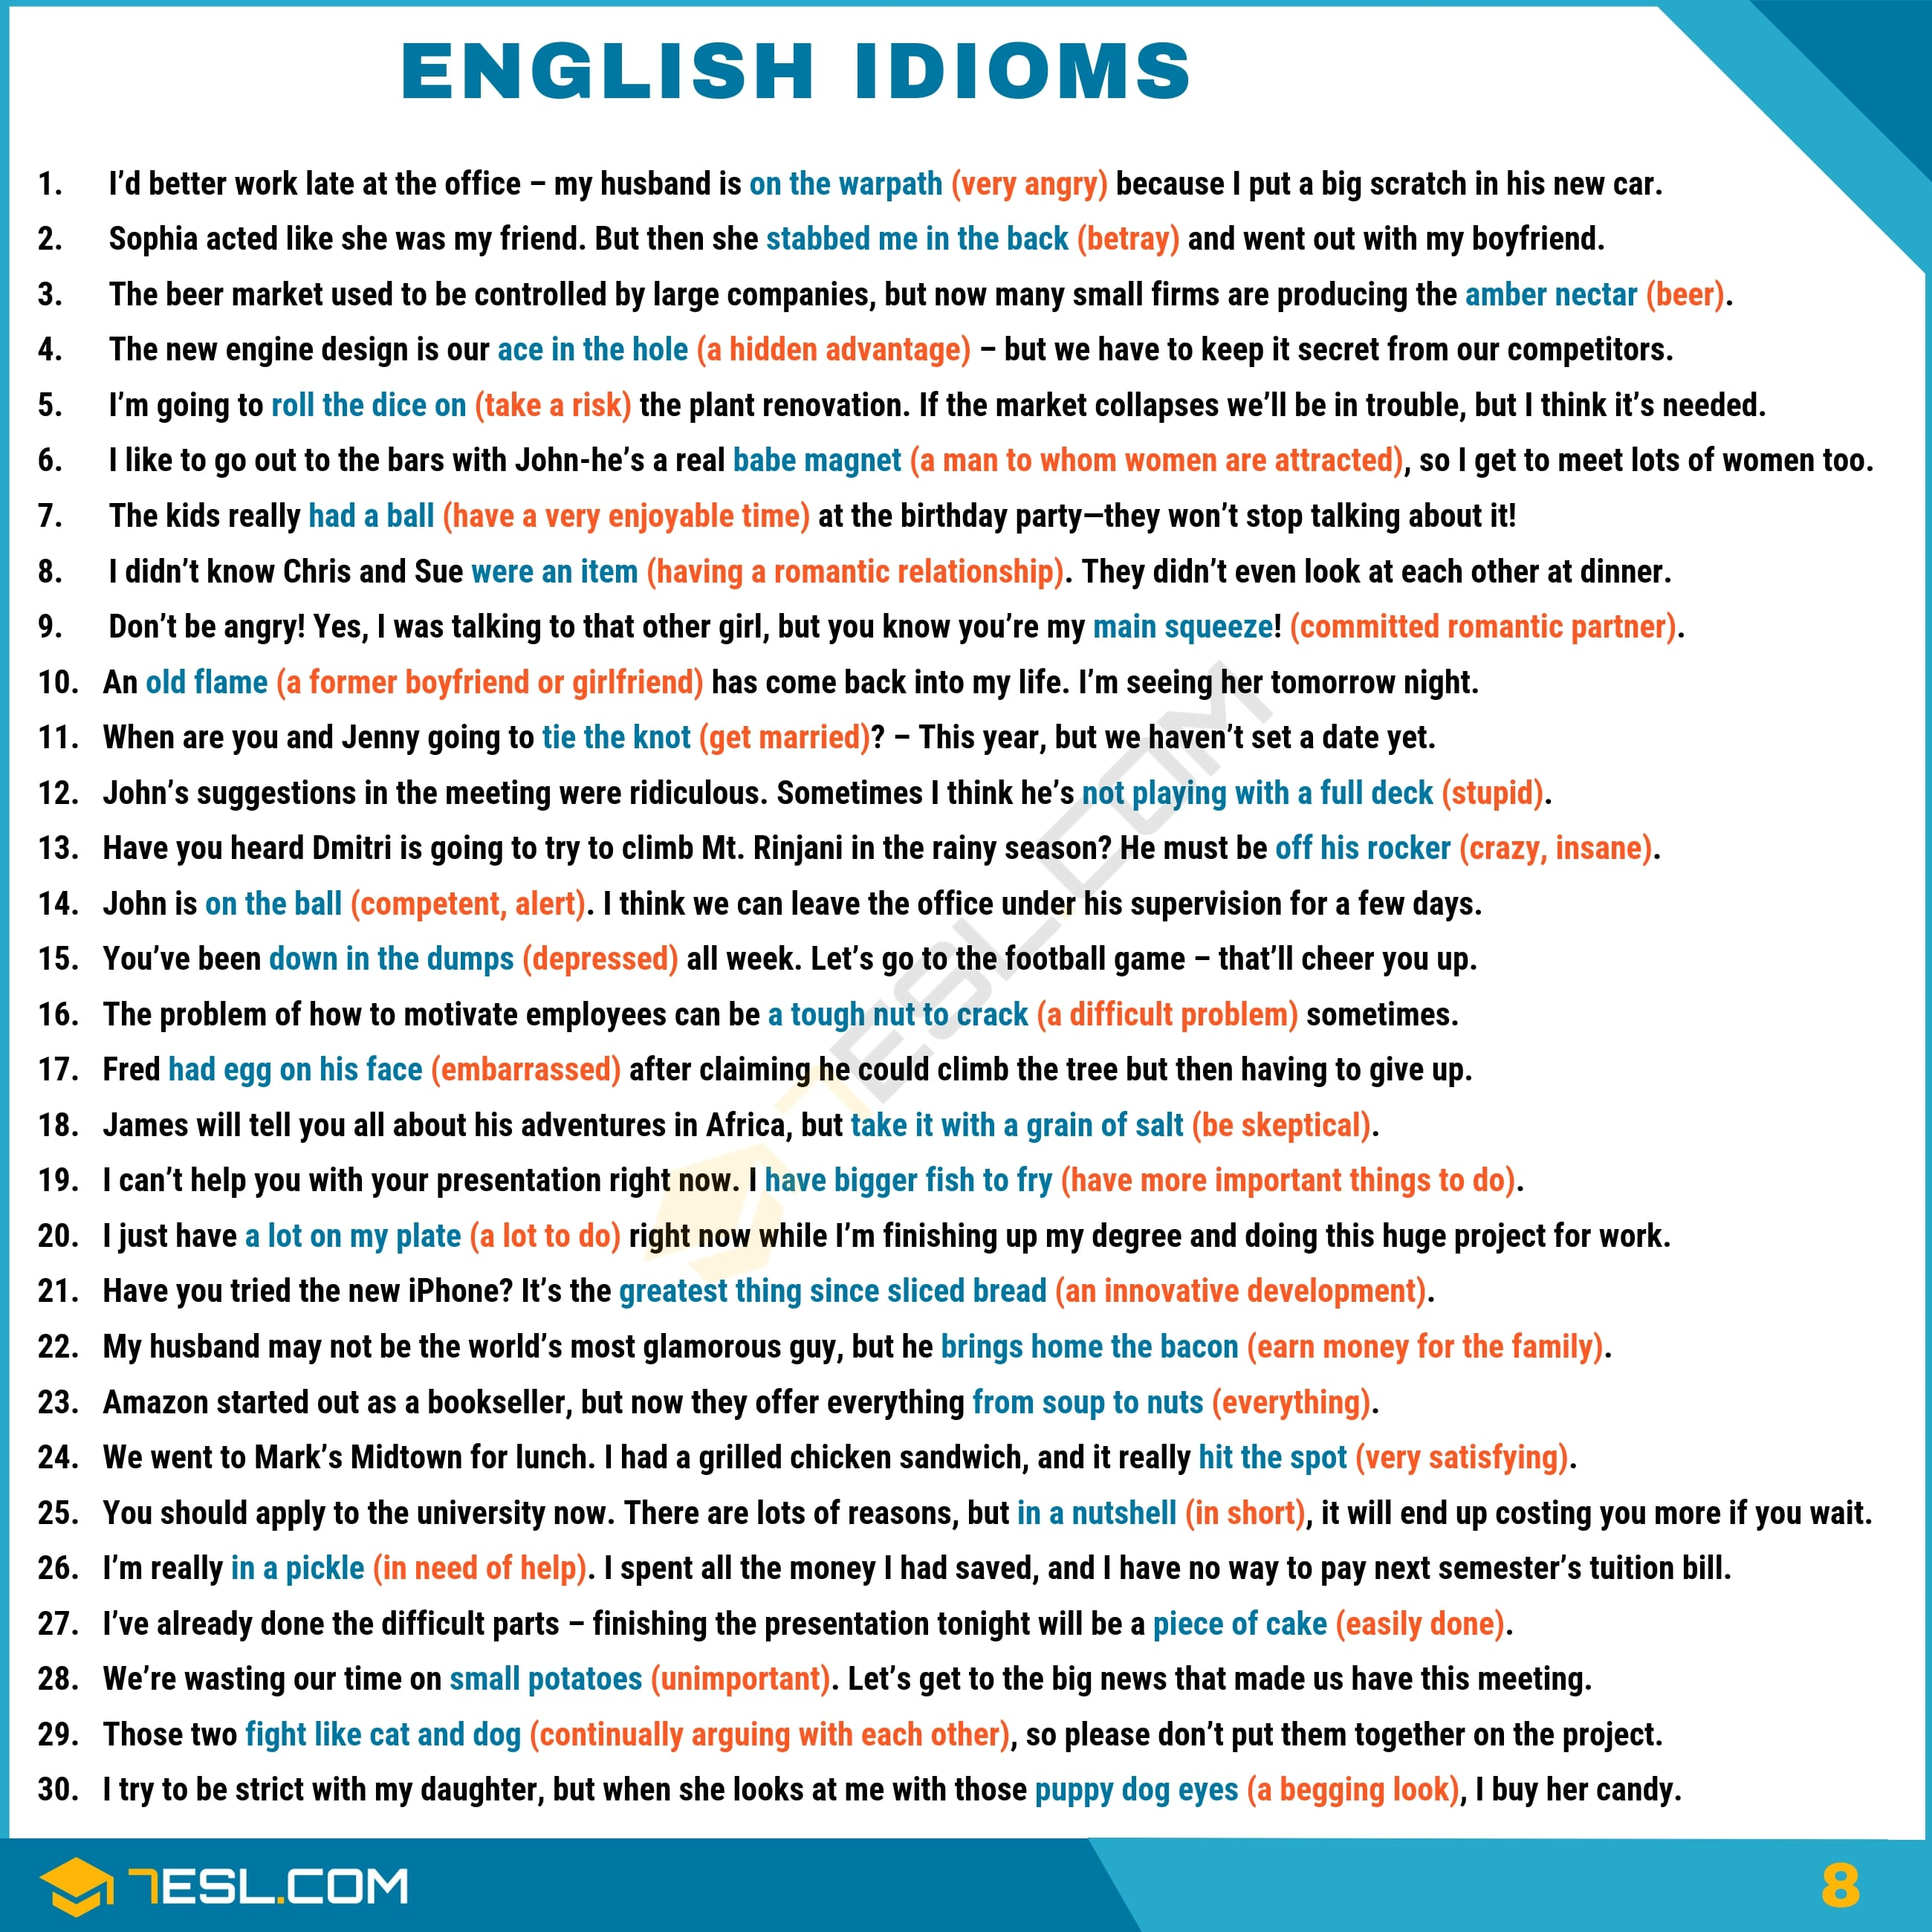 English Idioms Examples with Idiom Meaning | Image 8